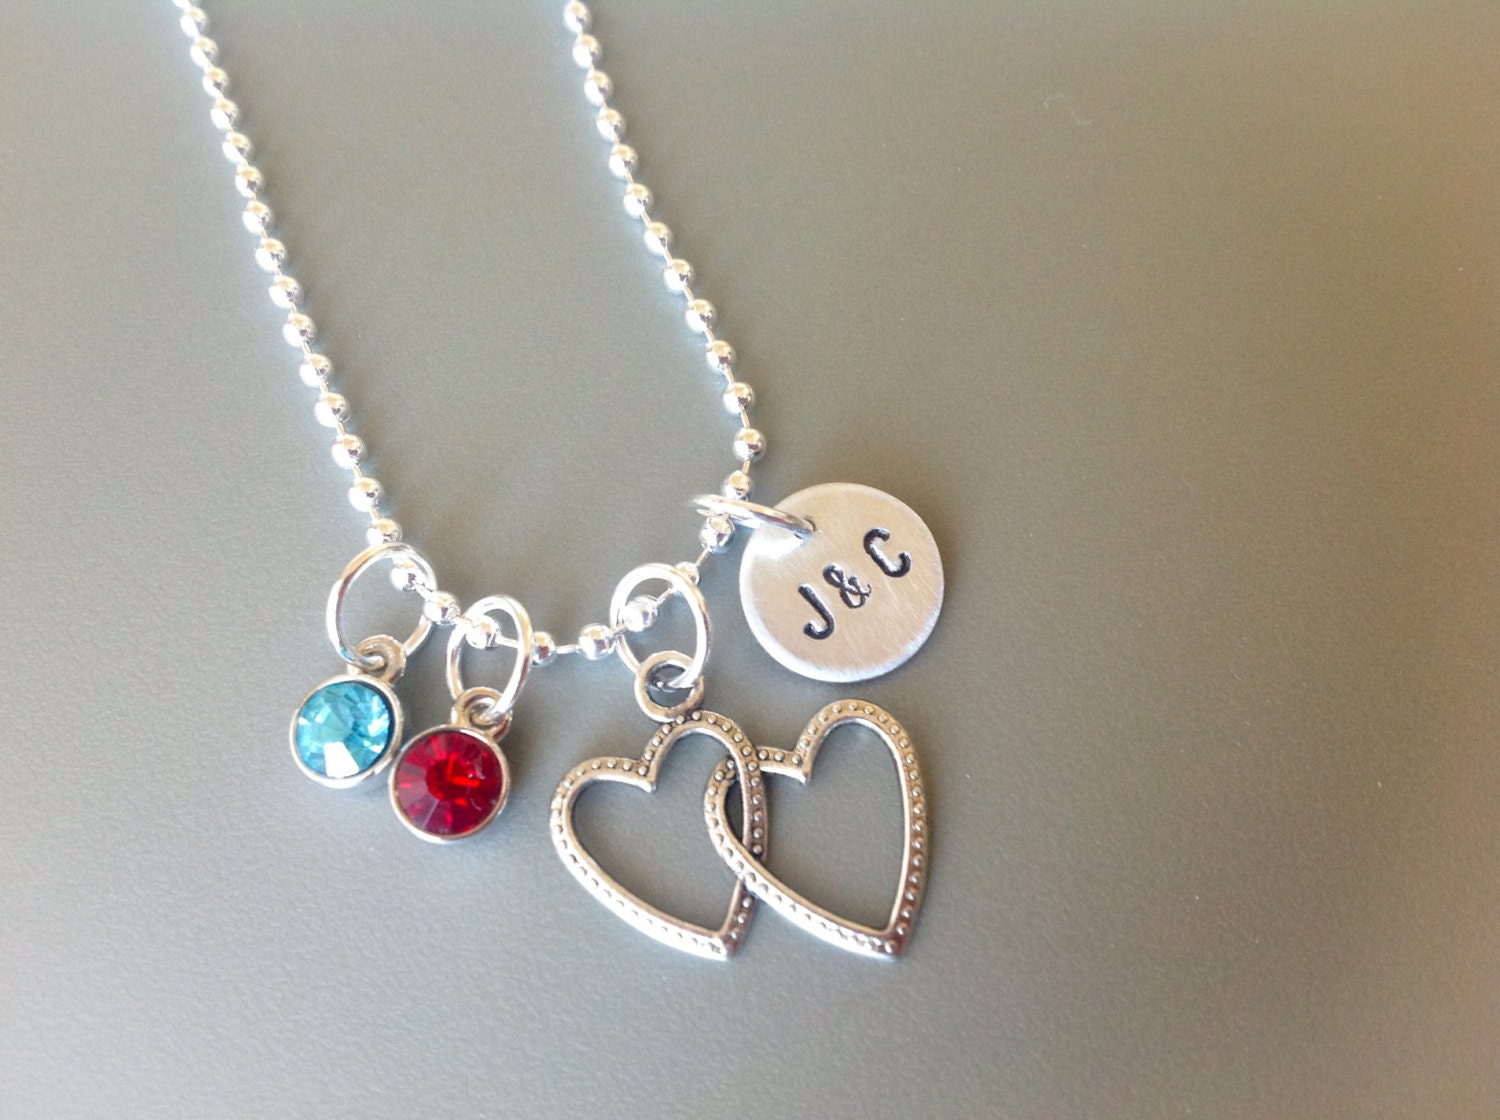 two heart necklace girlfriend necklace personalized. Black Bedroom Furniture Sets. Home Design Ideas